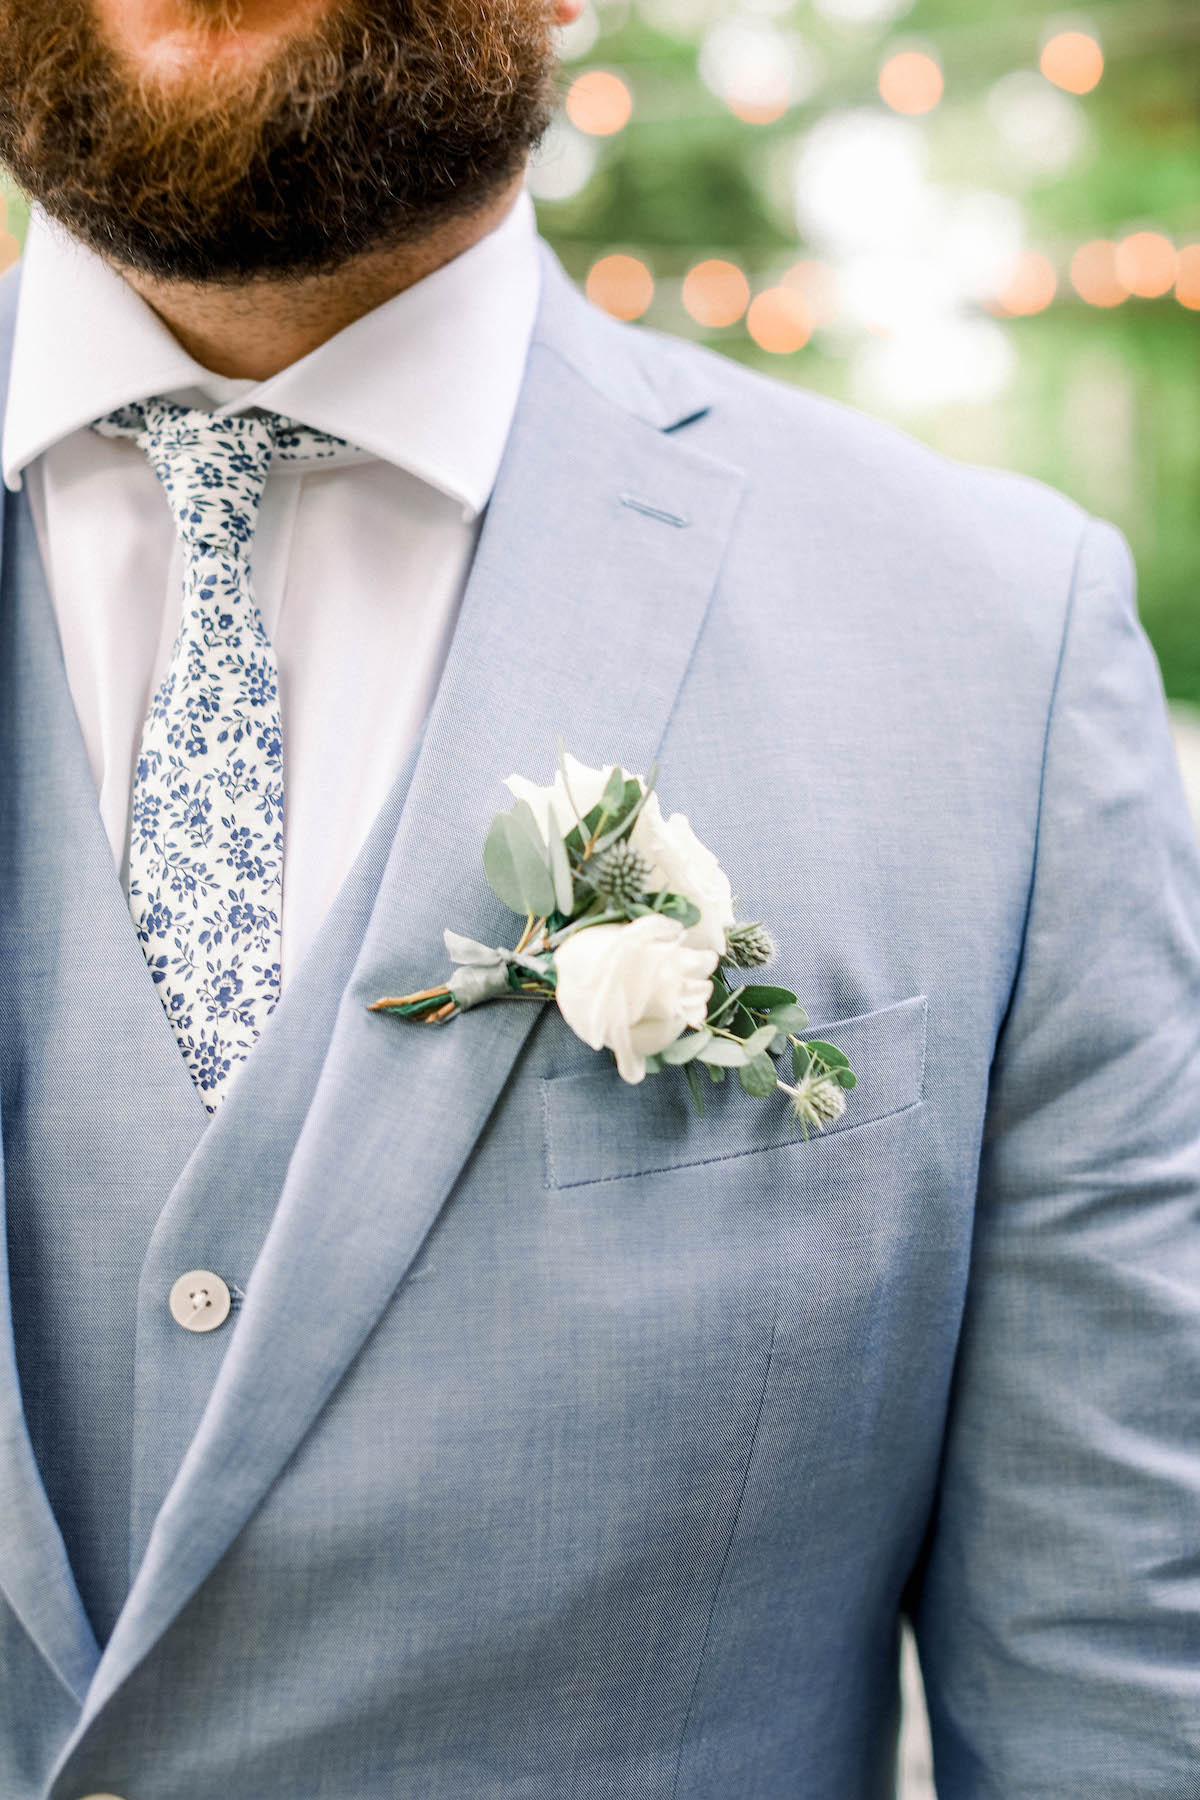 Groom in blue suit for spring wedding colors